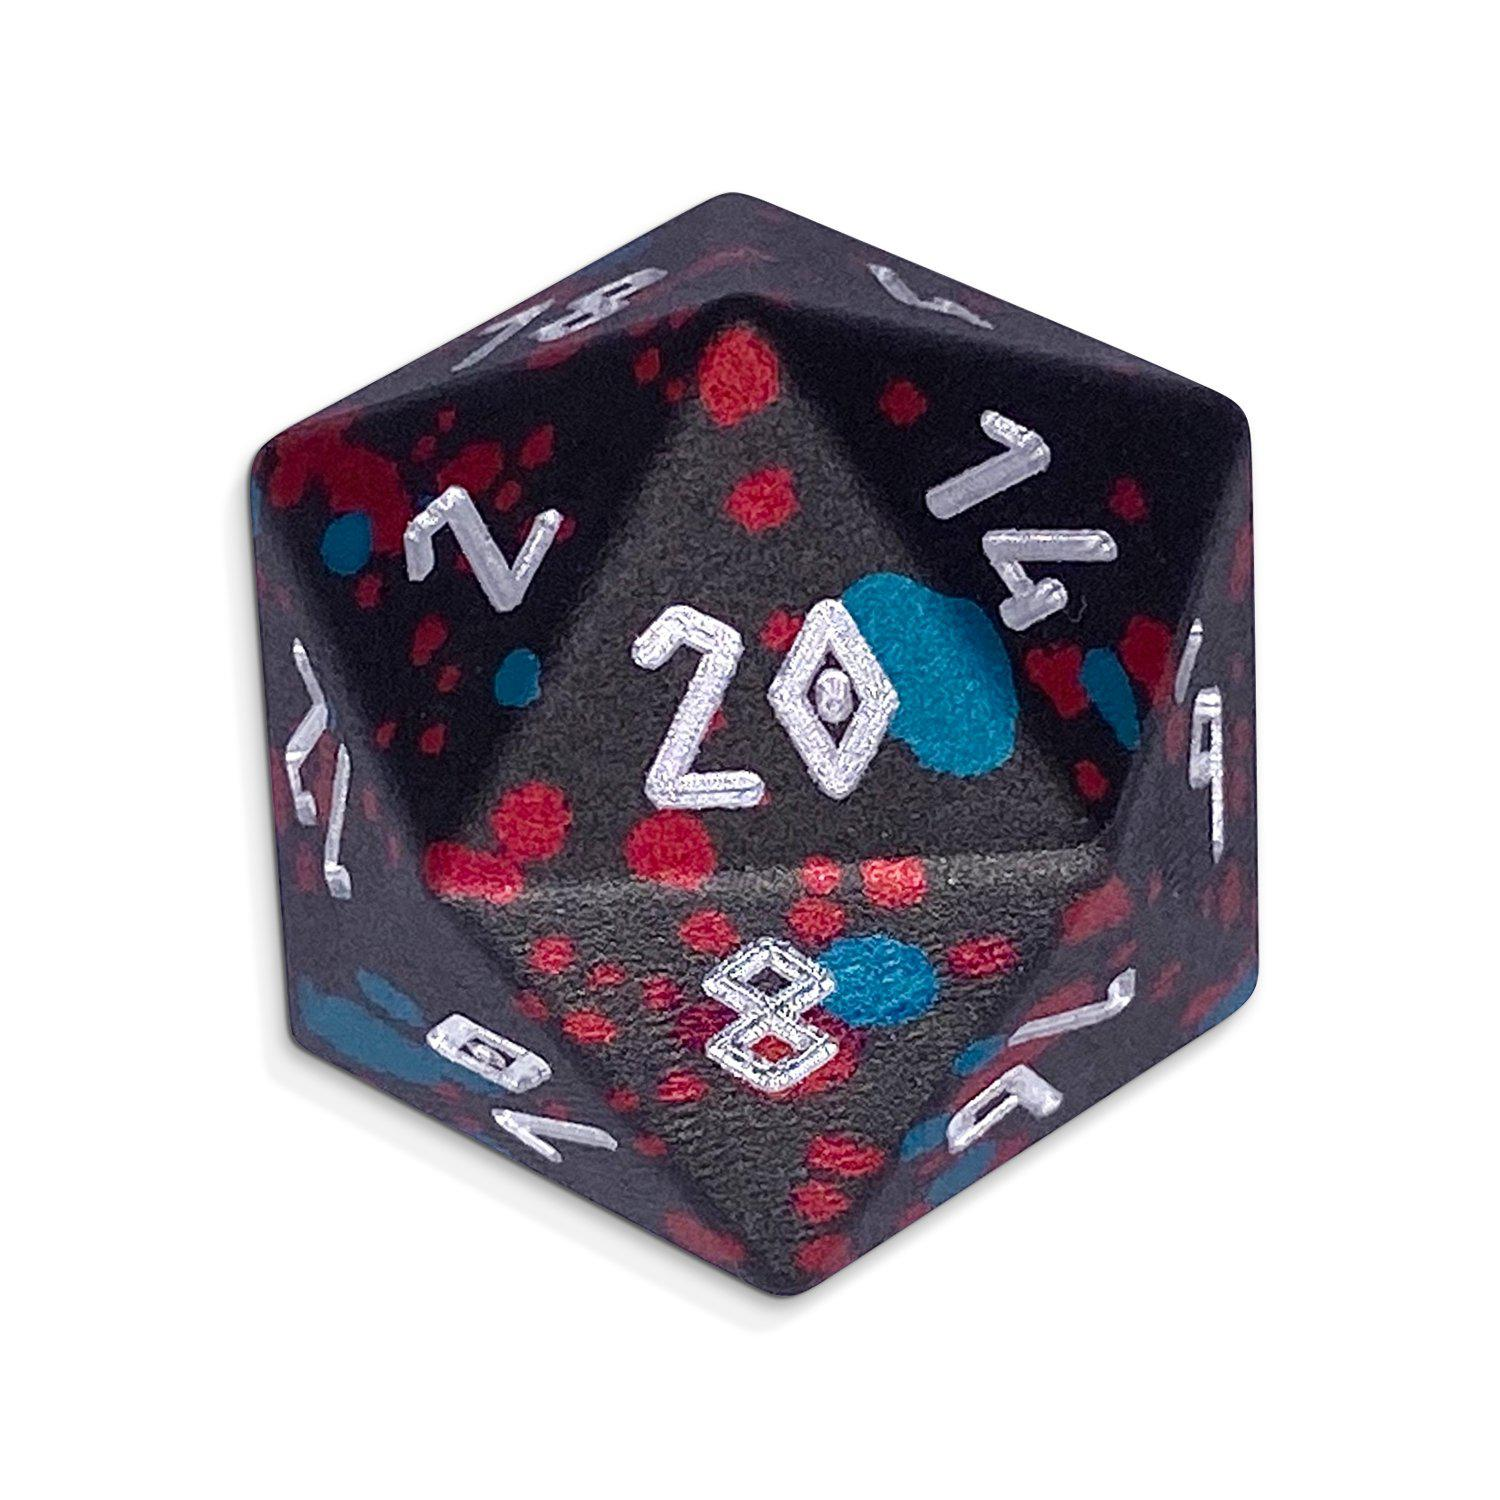 Single Wondrous Dice® D20 in Giant Slayer by Norse Foundry 6063 Aircraft Grade Aluminum